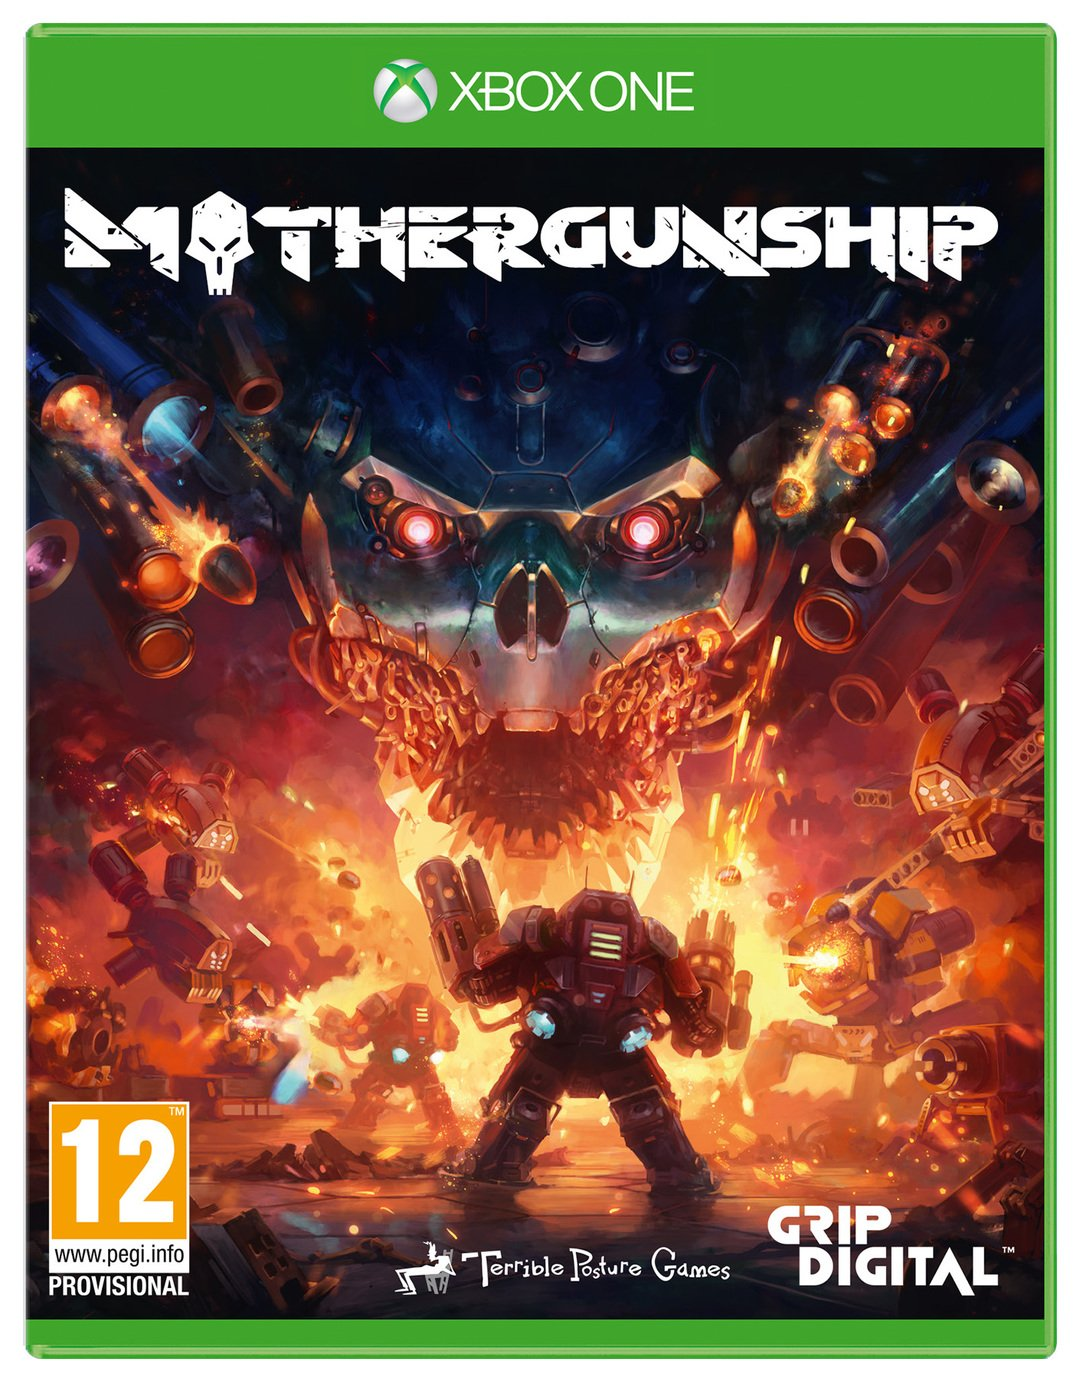 MOTHERGUNSHIP Xbox One Game from Mothergunship